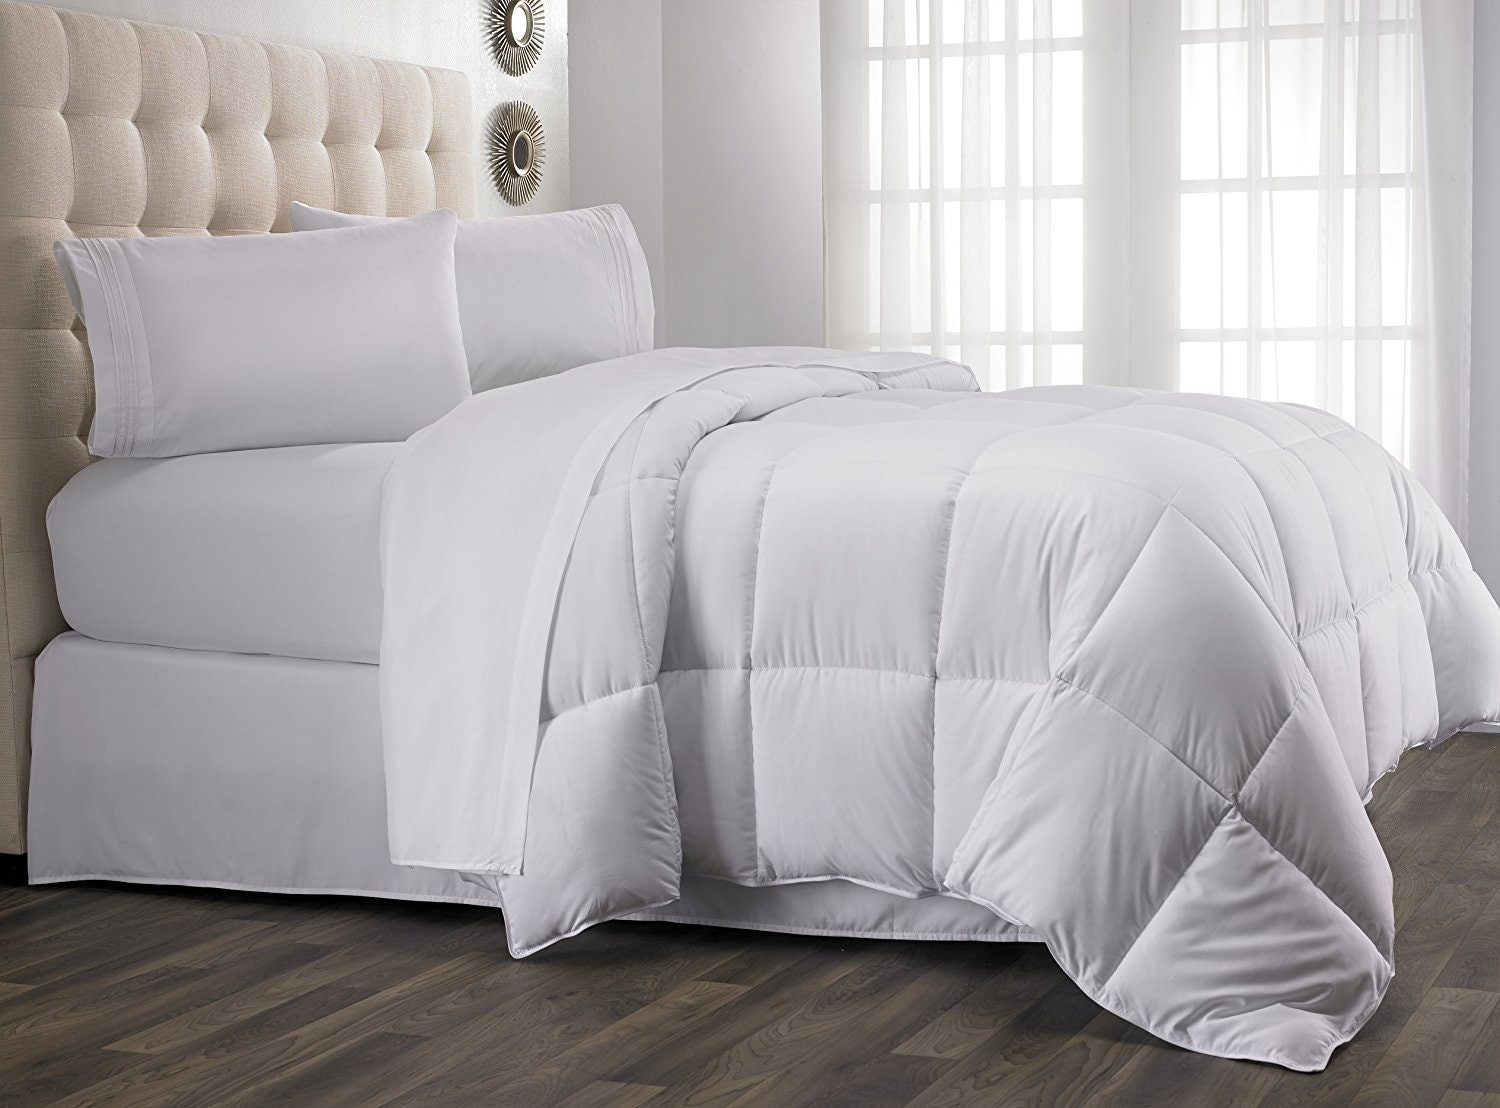 style from duvet full white stylish inspiration comforter sets girl popular gallery cover